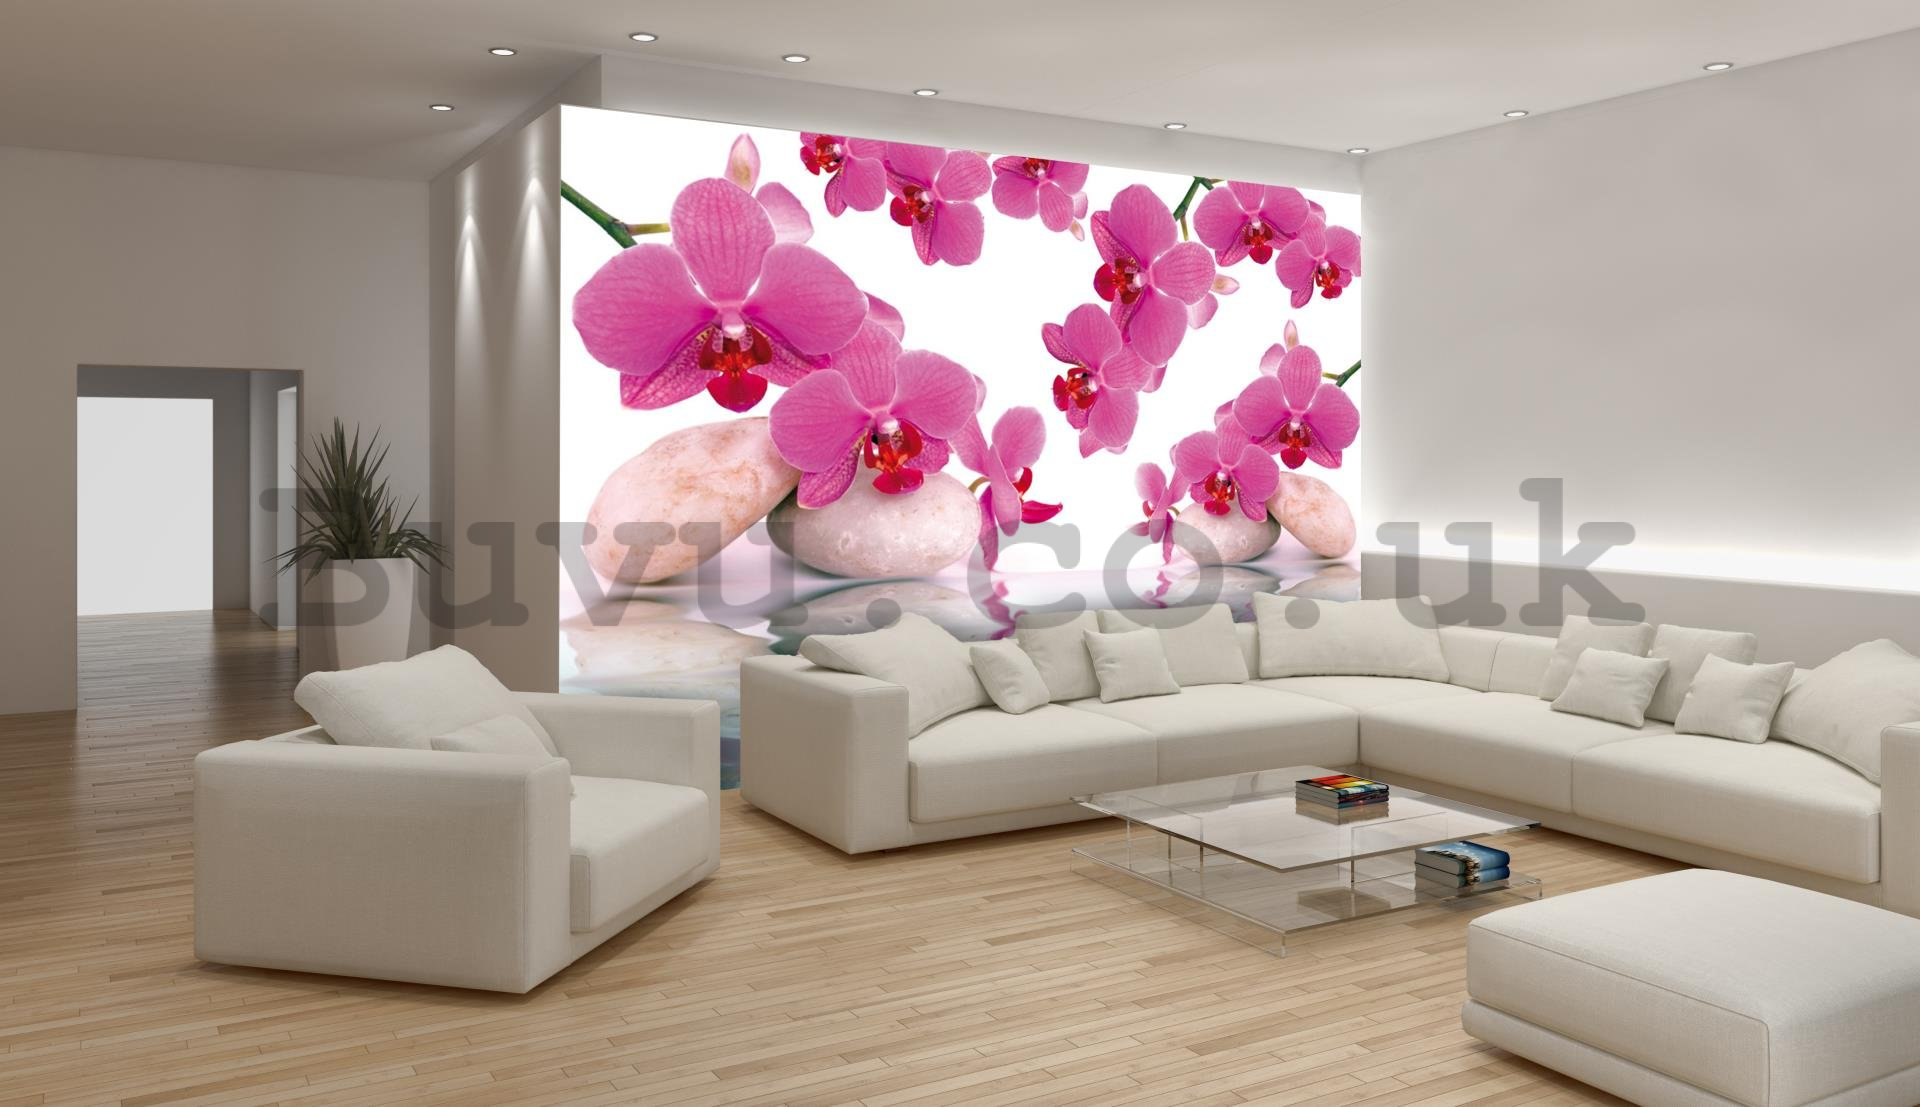 Wall Mural: Orchid and stones - 254x368 cm